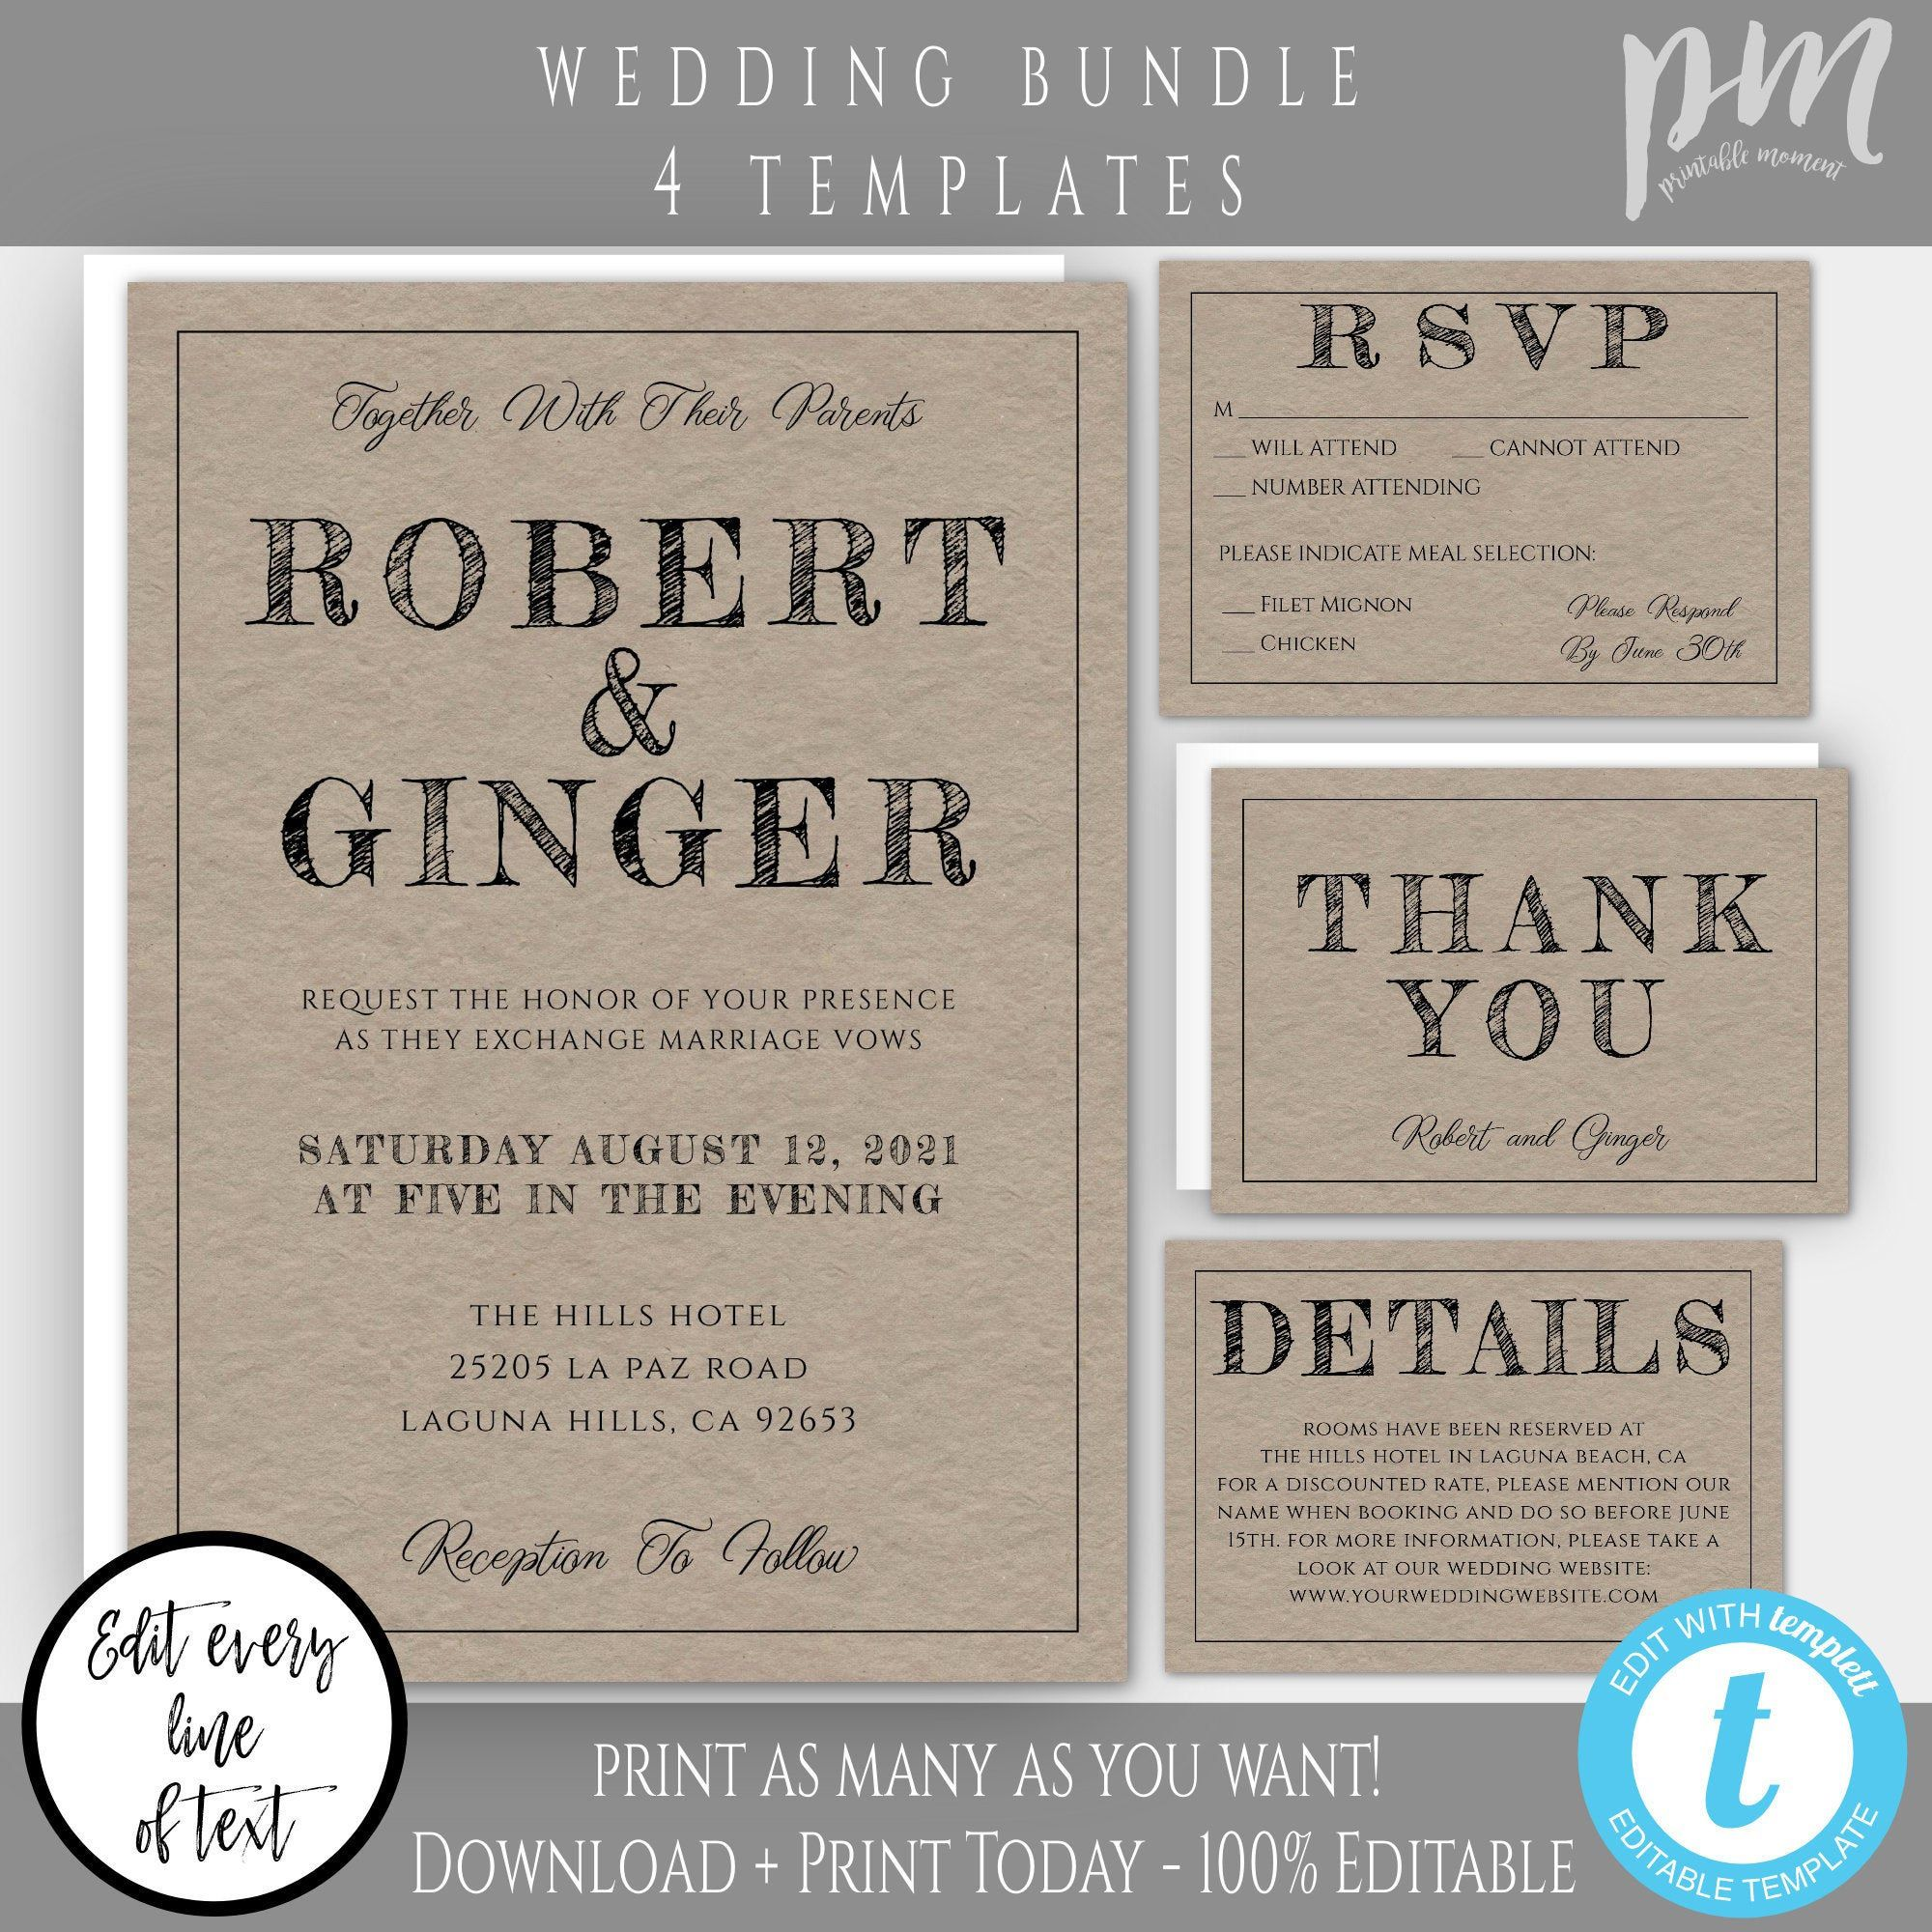 008 Magnificent Rustic Wedding Invitation Template Example  Templates Free For Word Maker PhotoshopFull